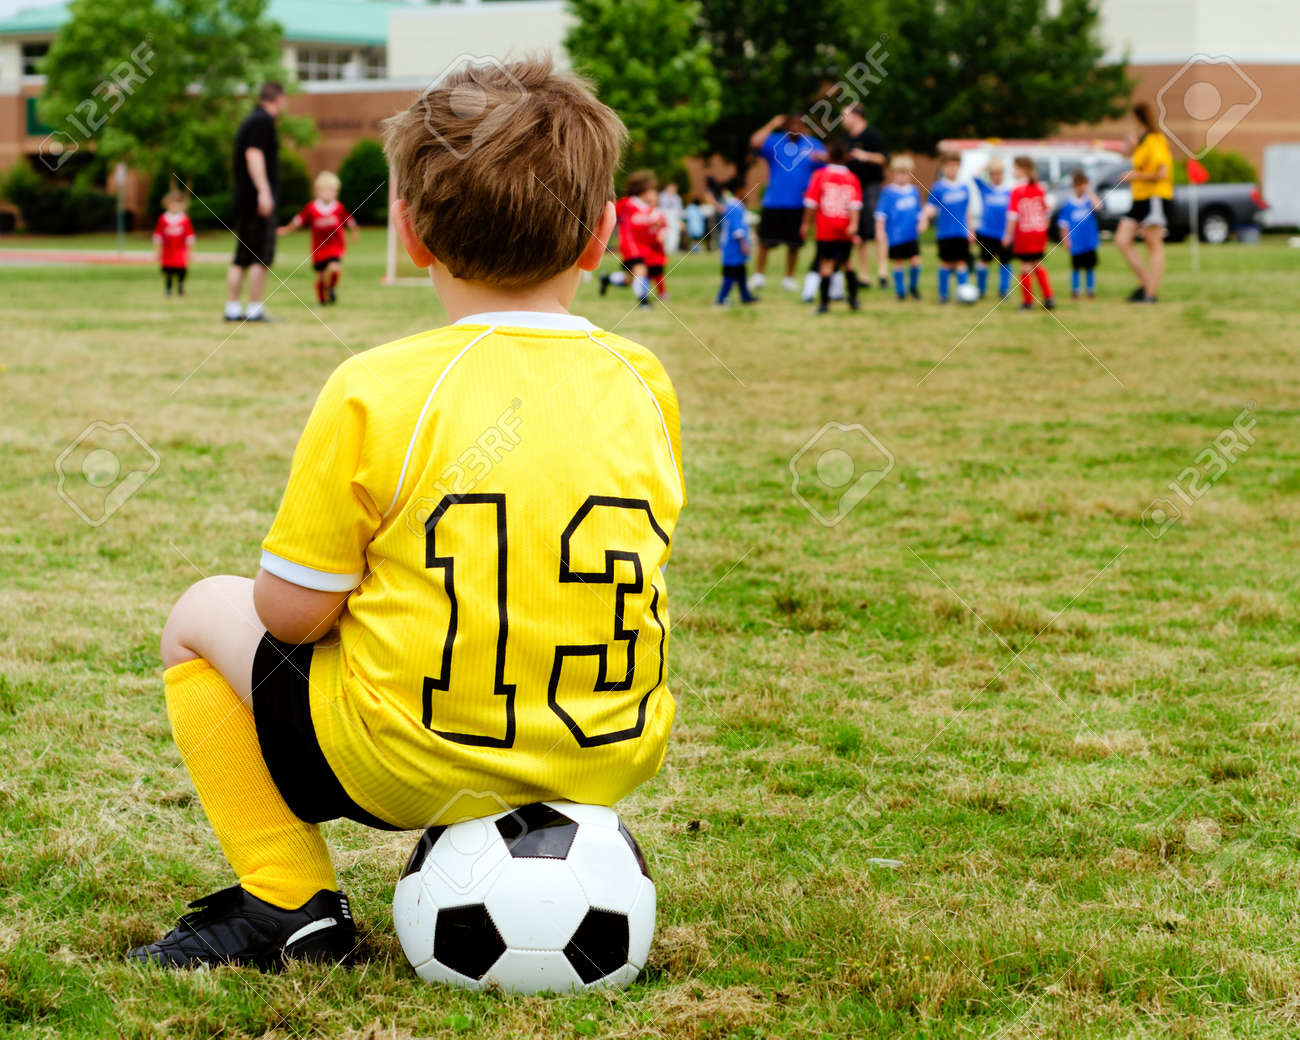 Young boy child in uniform watching organized youth soccer or